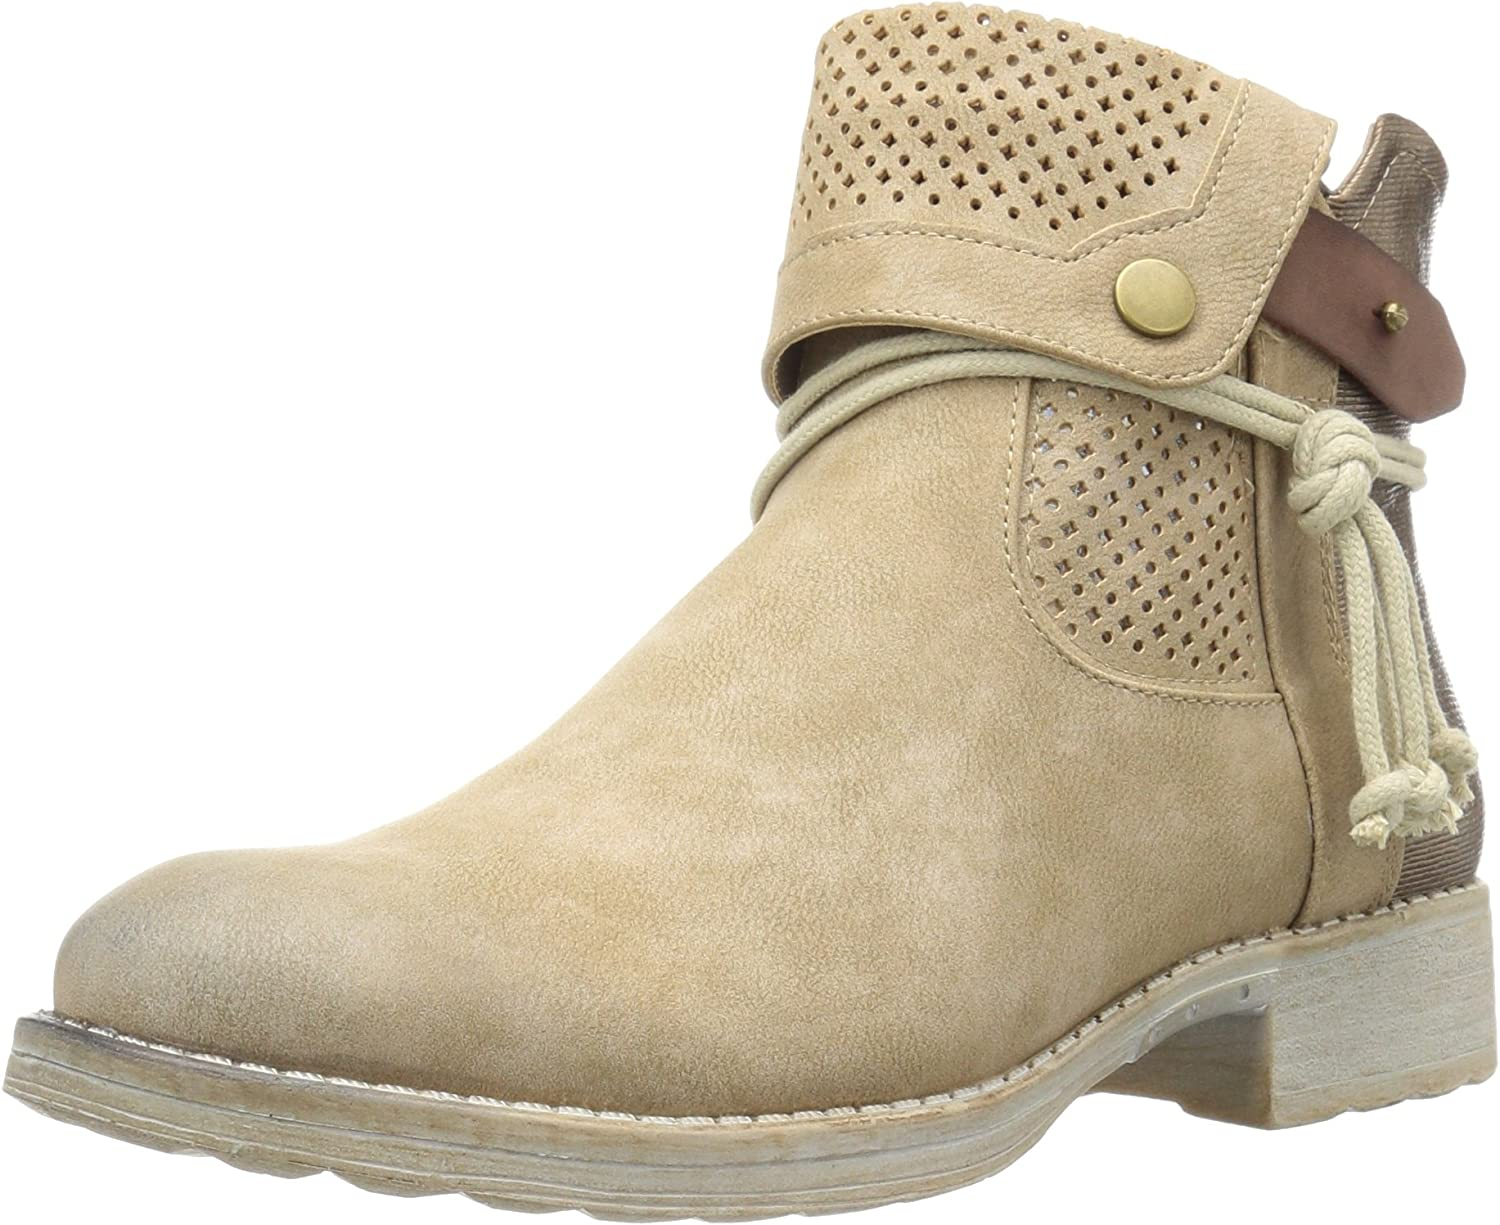 Dirty Laundry Womens Tumbler Ankle Bootie